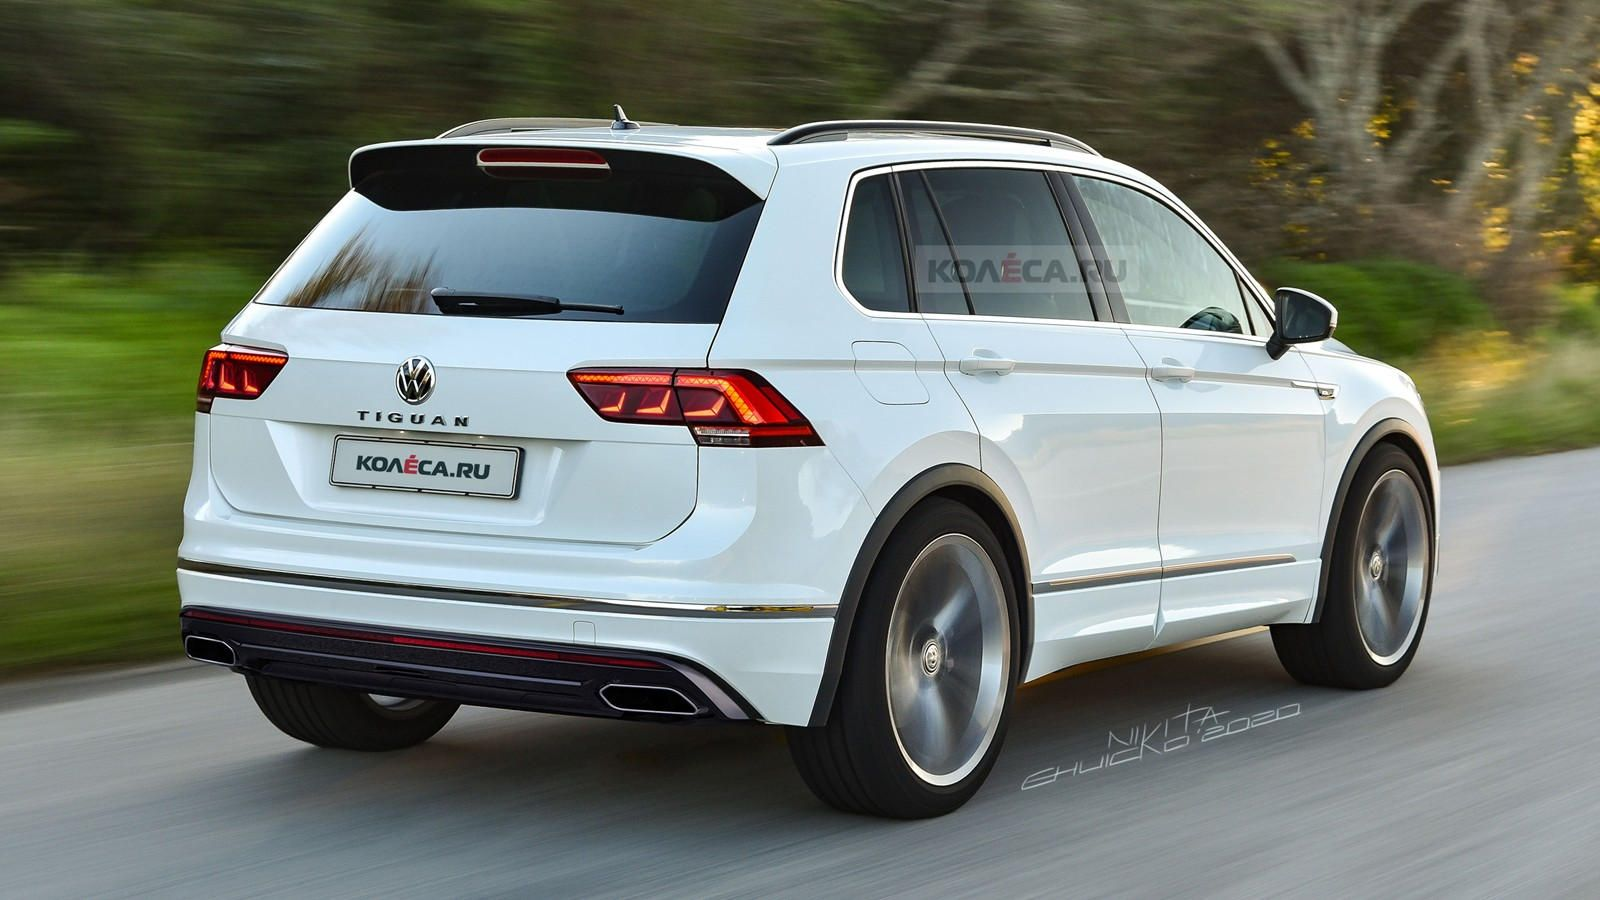 This Is Our Best Look Yet At The 2021 Vw Tiguan We Re Expecting The Volkswagen Tiguan Facelift To Debut At Geneva In March In 2020 Volkswagen Mini Van Polo R